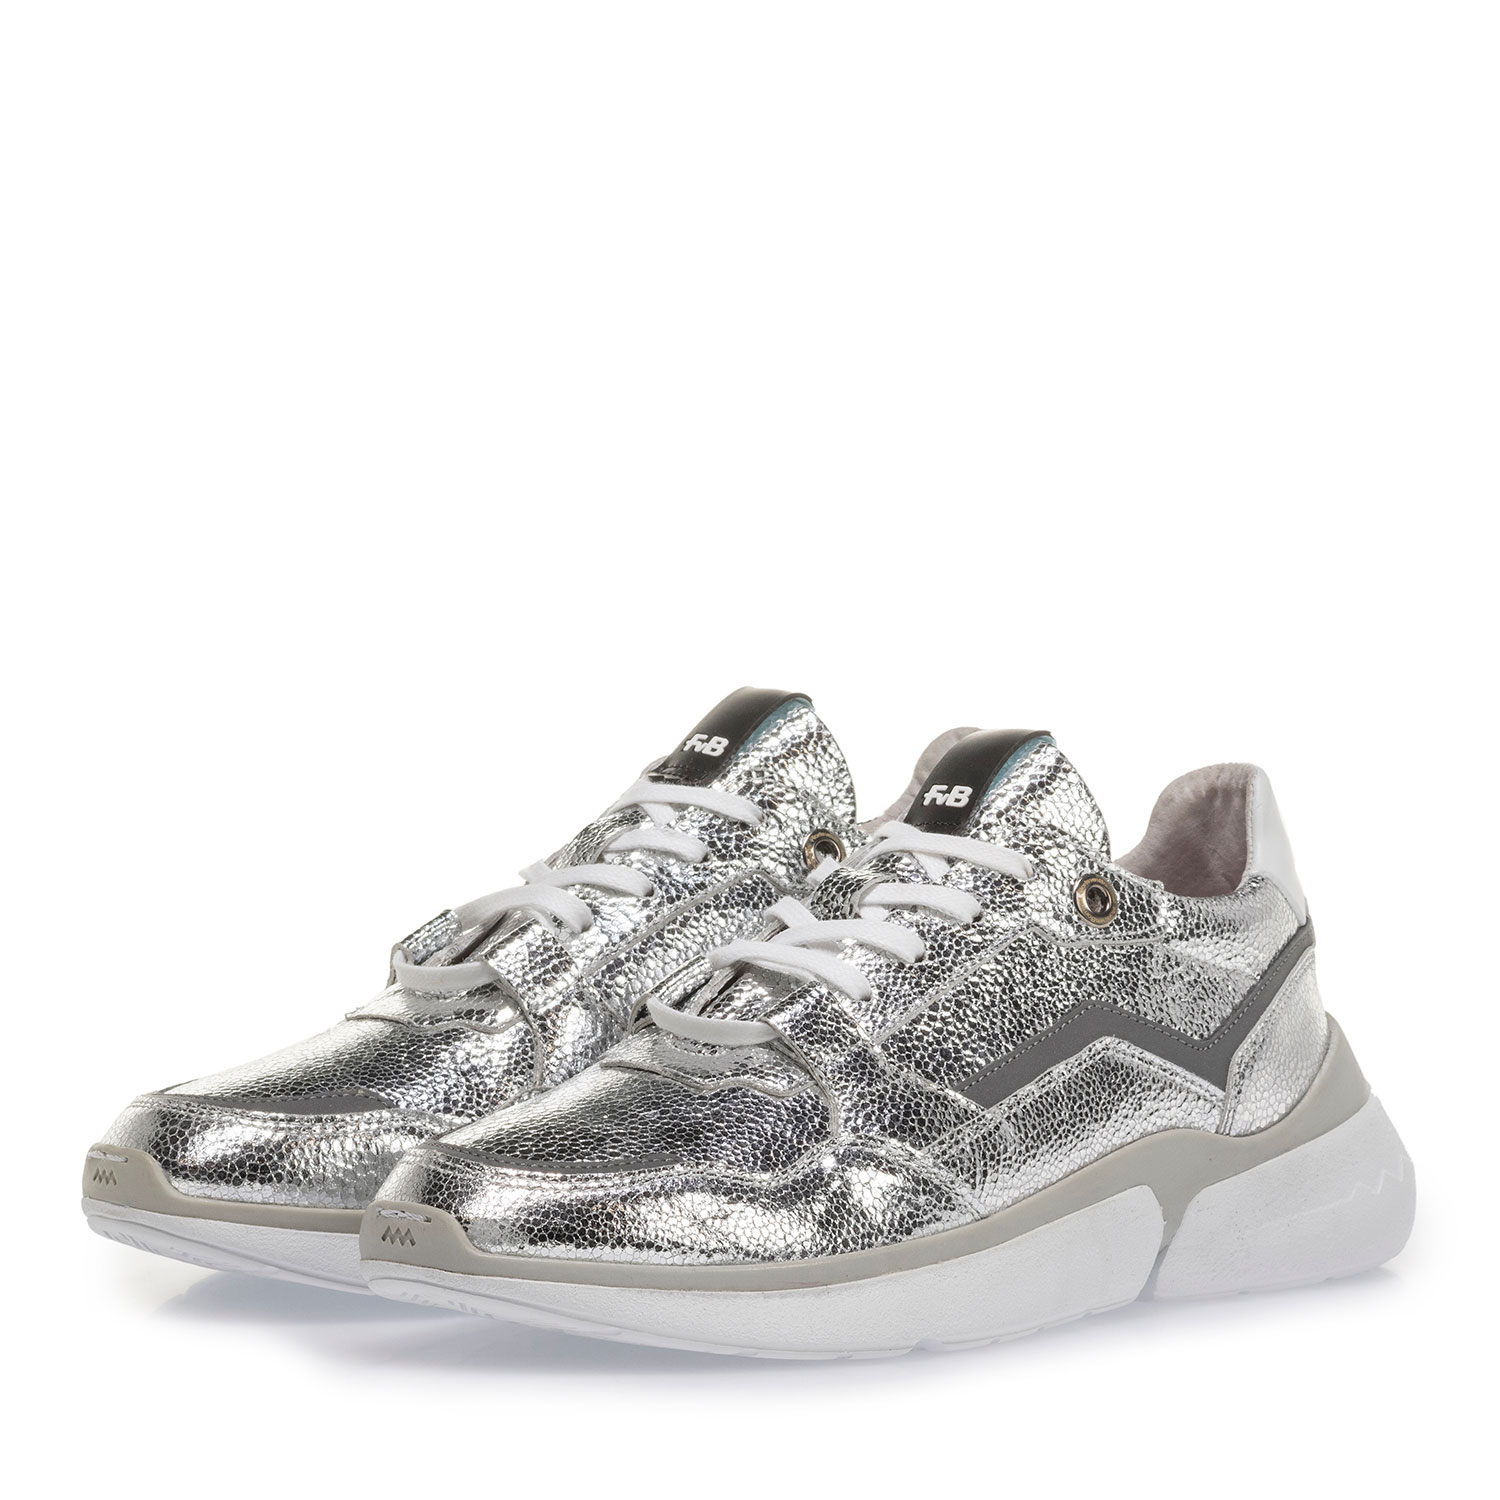 85291/16 - Silver sneaker with metallic print